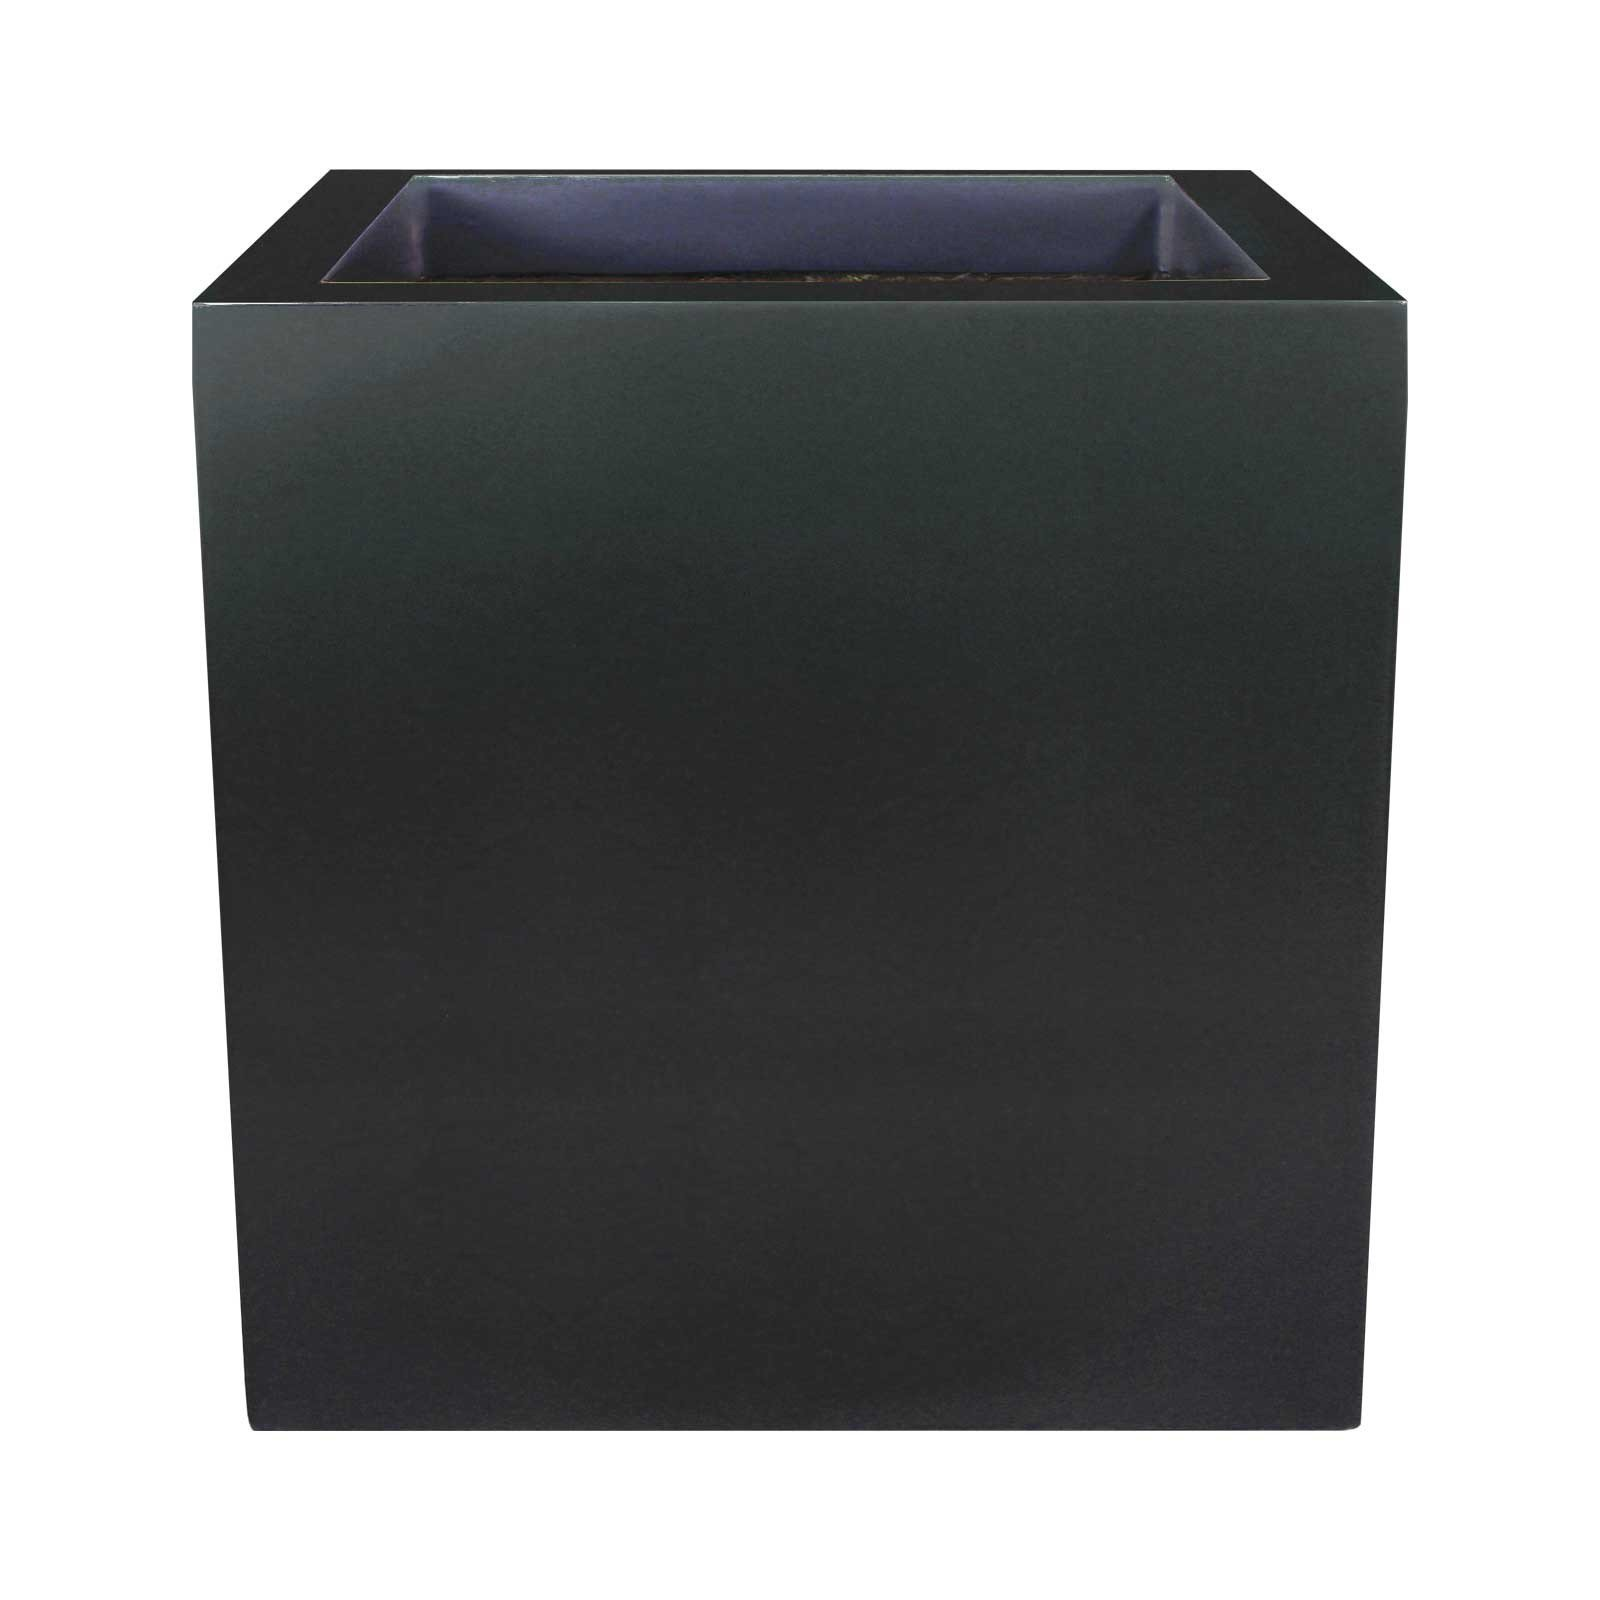 Square Urn Planter - Plastic - 22' - Leyla by Crescent Garden